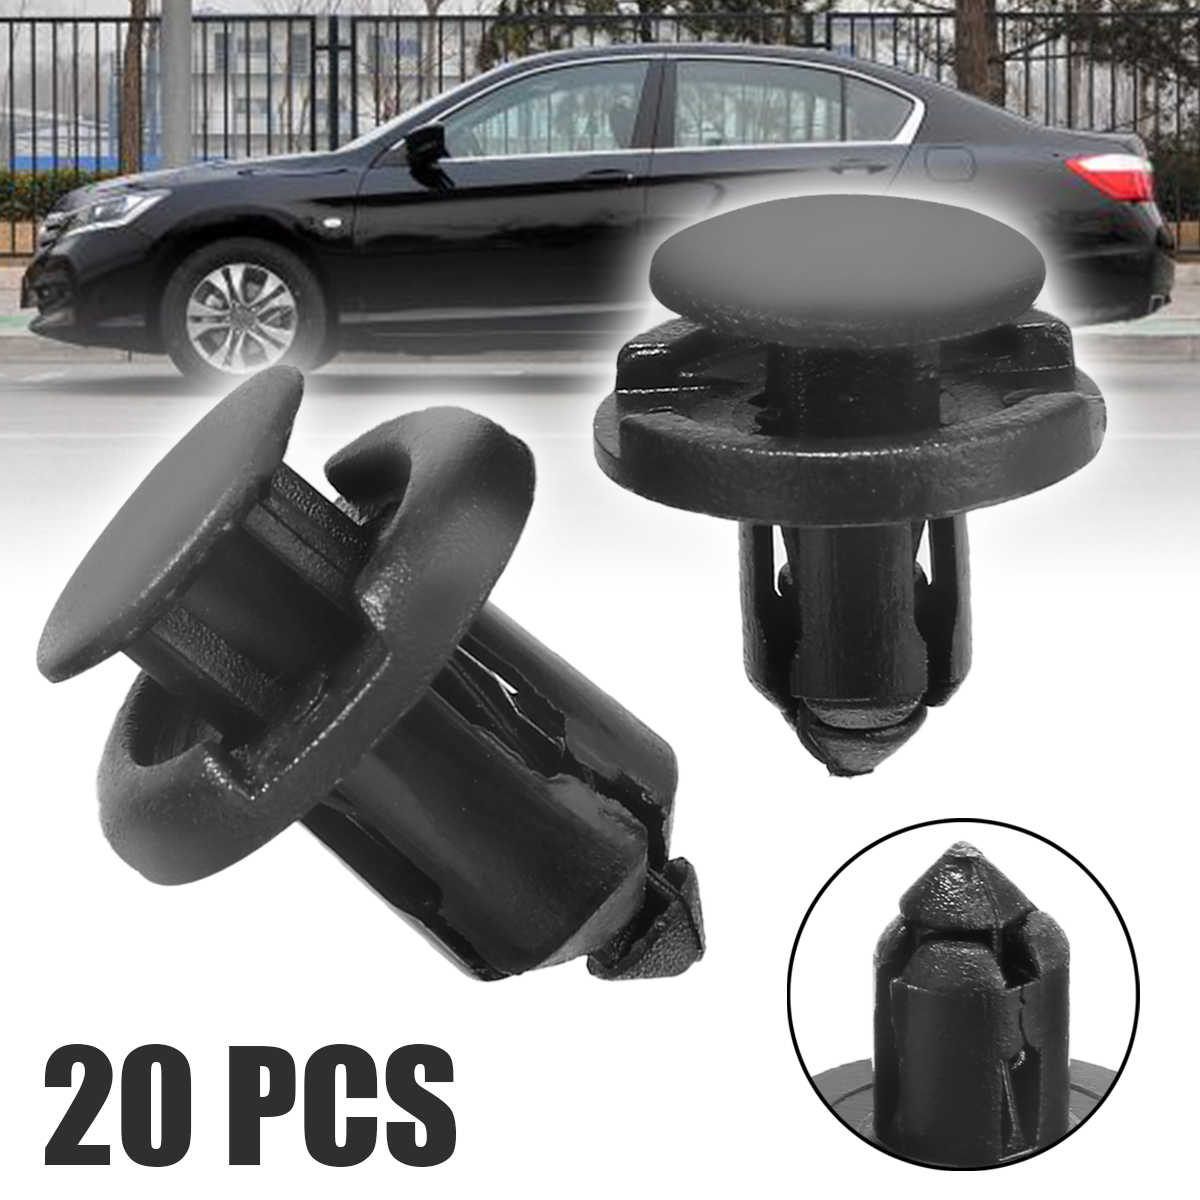 20Pcs/set 8mm 10mm Hole Plastic Retainer Bumper Rivet Trim Clip Engine Cover Panel Clip Fasteners For Honda Civic Accord